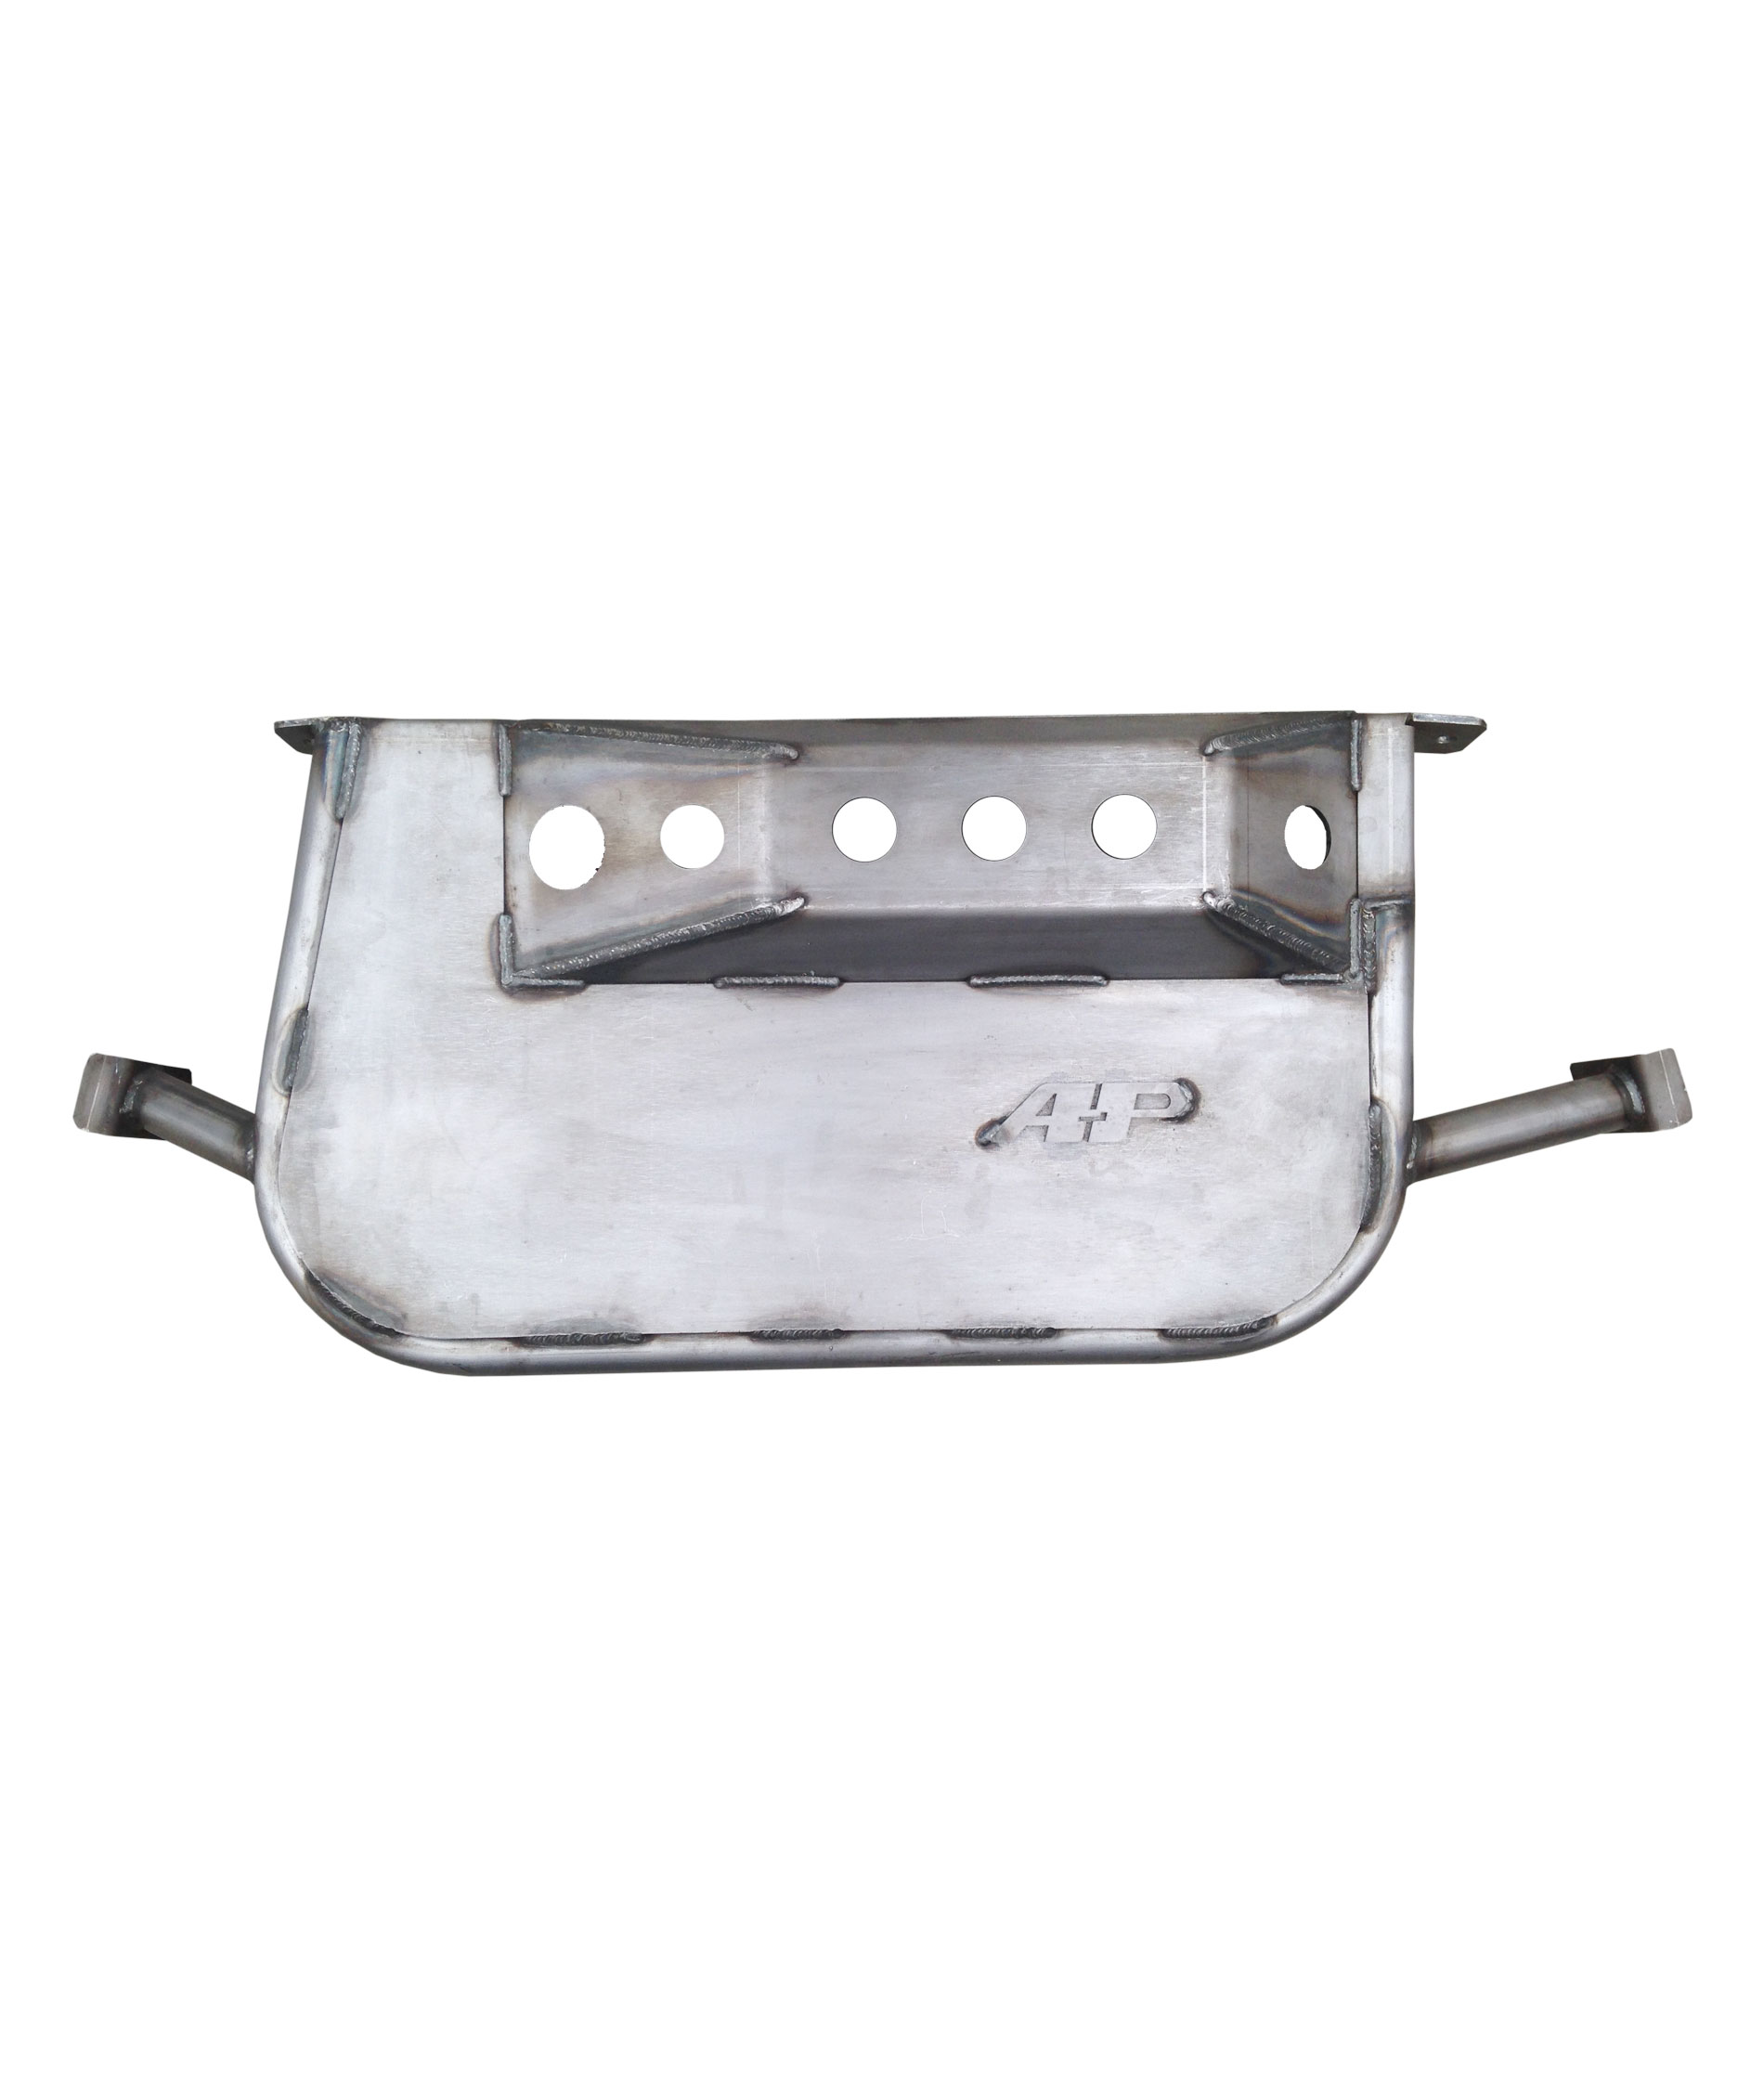 Tacoma Transfer Case/ Exhaust Skid Plate